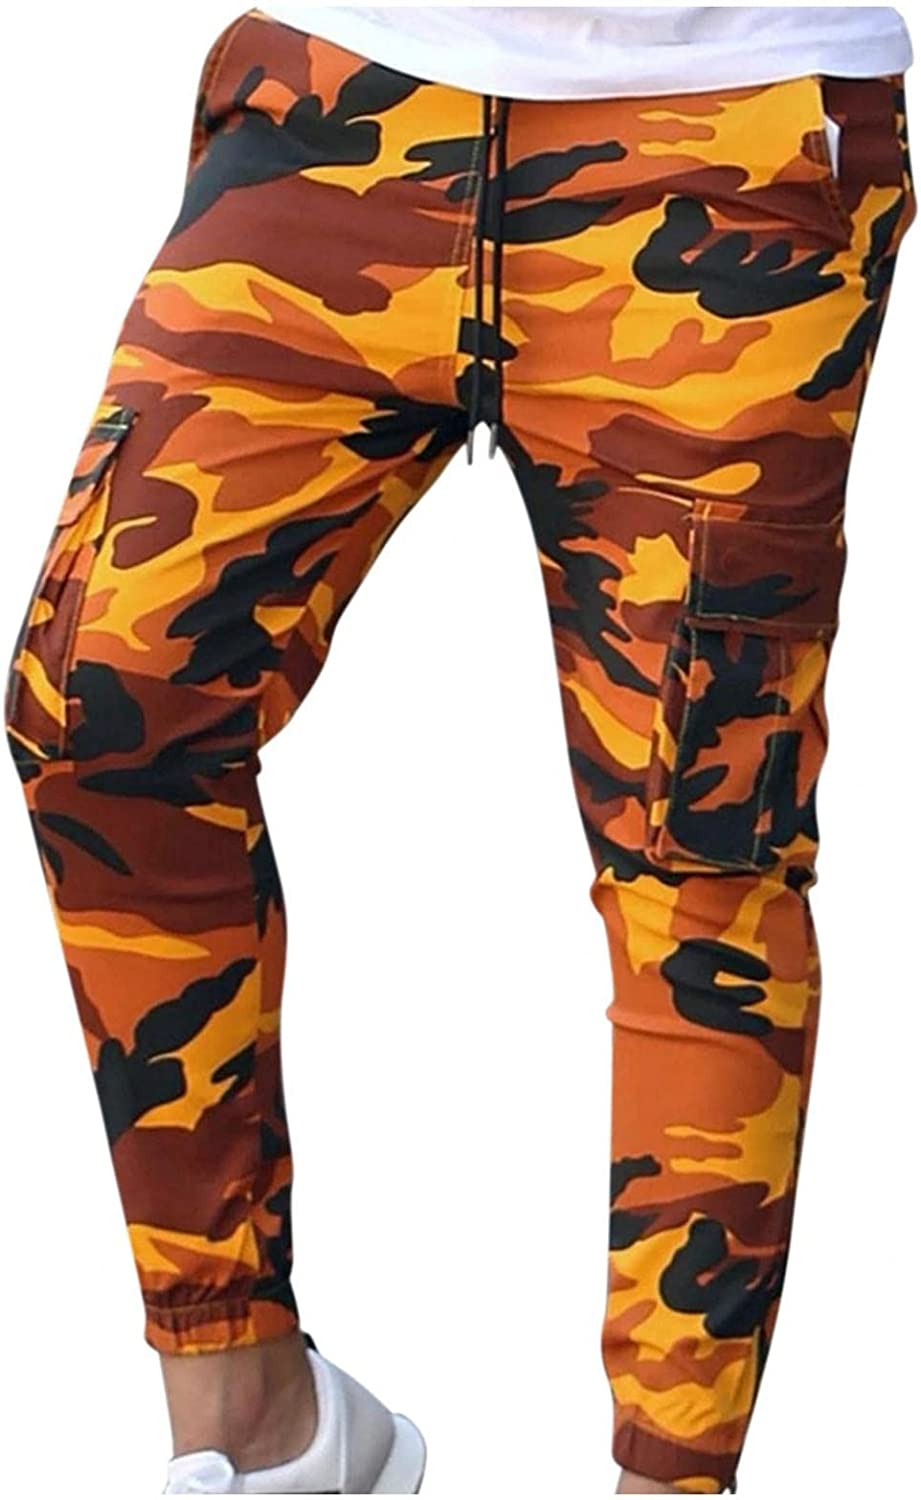 Beshion Sweatpants for Men Jogger Slim Cargo Pants Casual Camouflage Athletic Workout Running Pants Sport Trousers